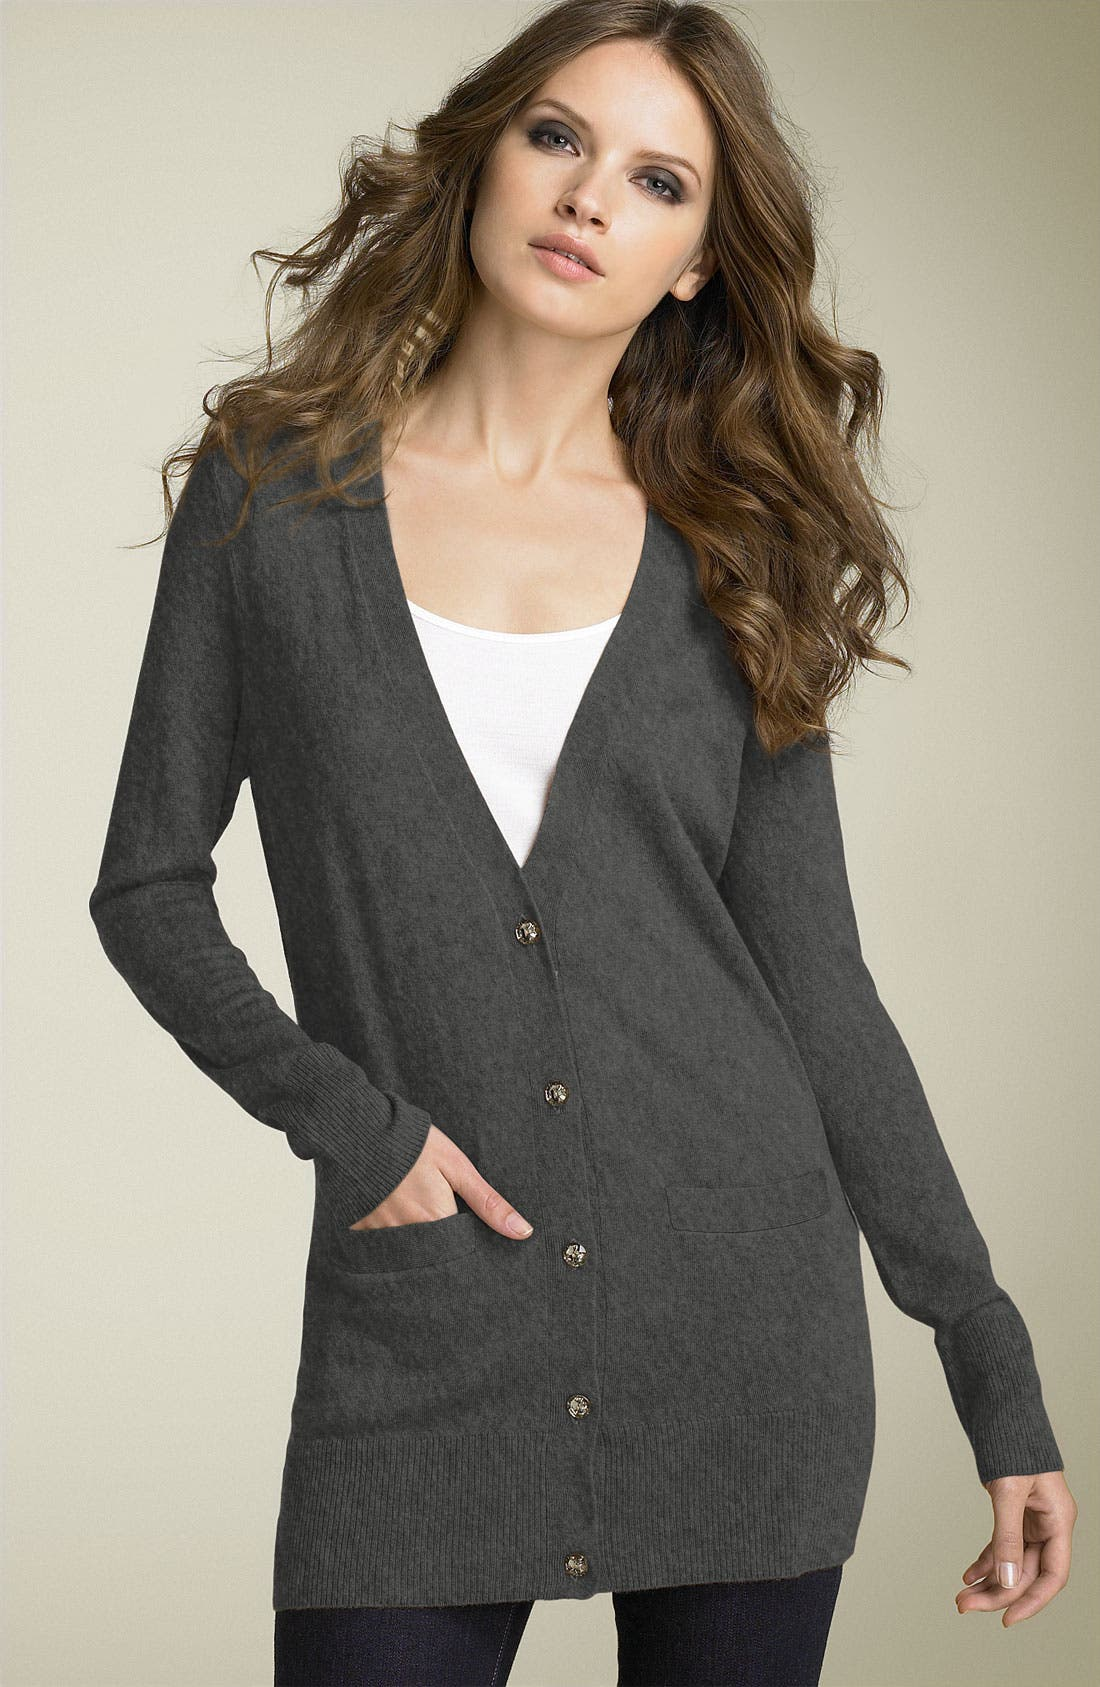 Alternate Image 1 Selected - Joie 'Chasity' Cashmere Blend Cardigan